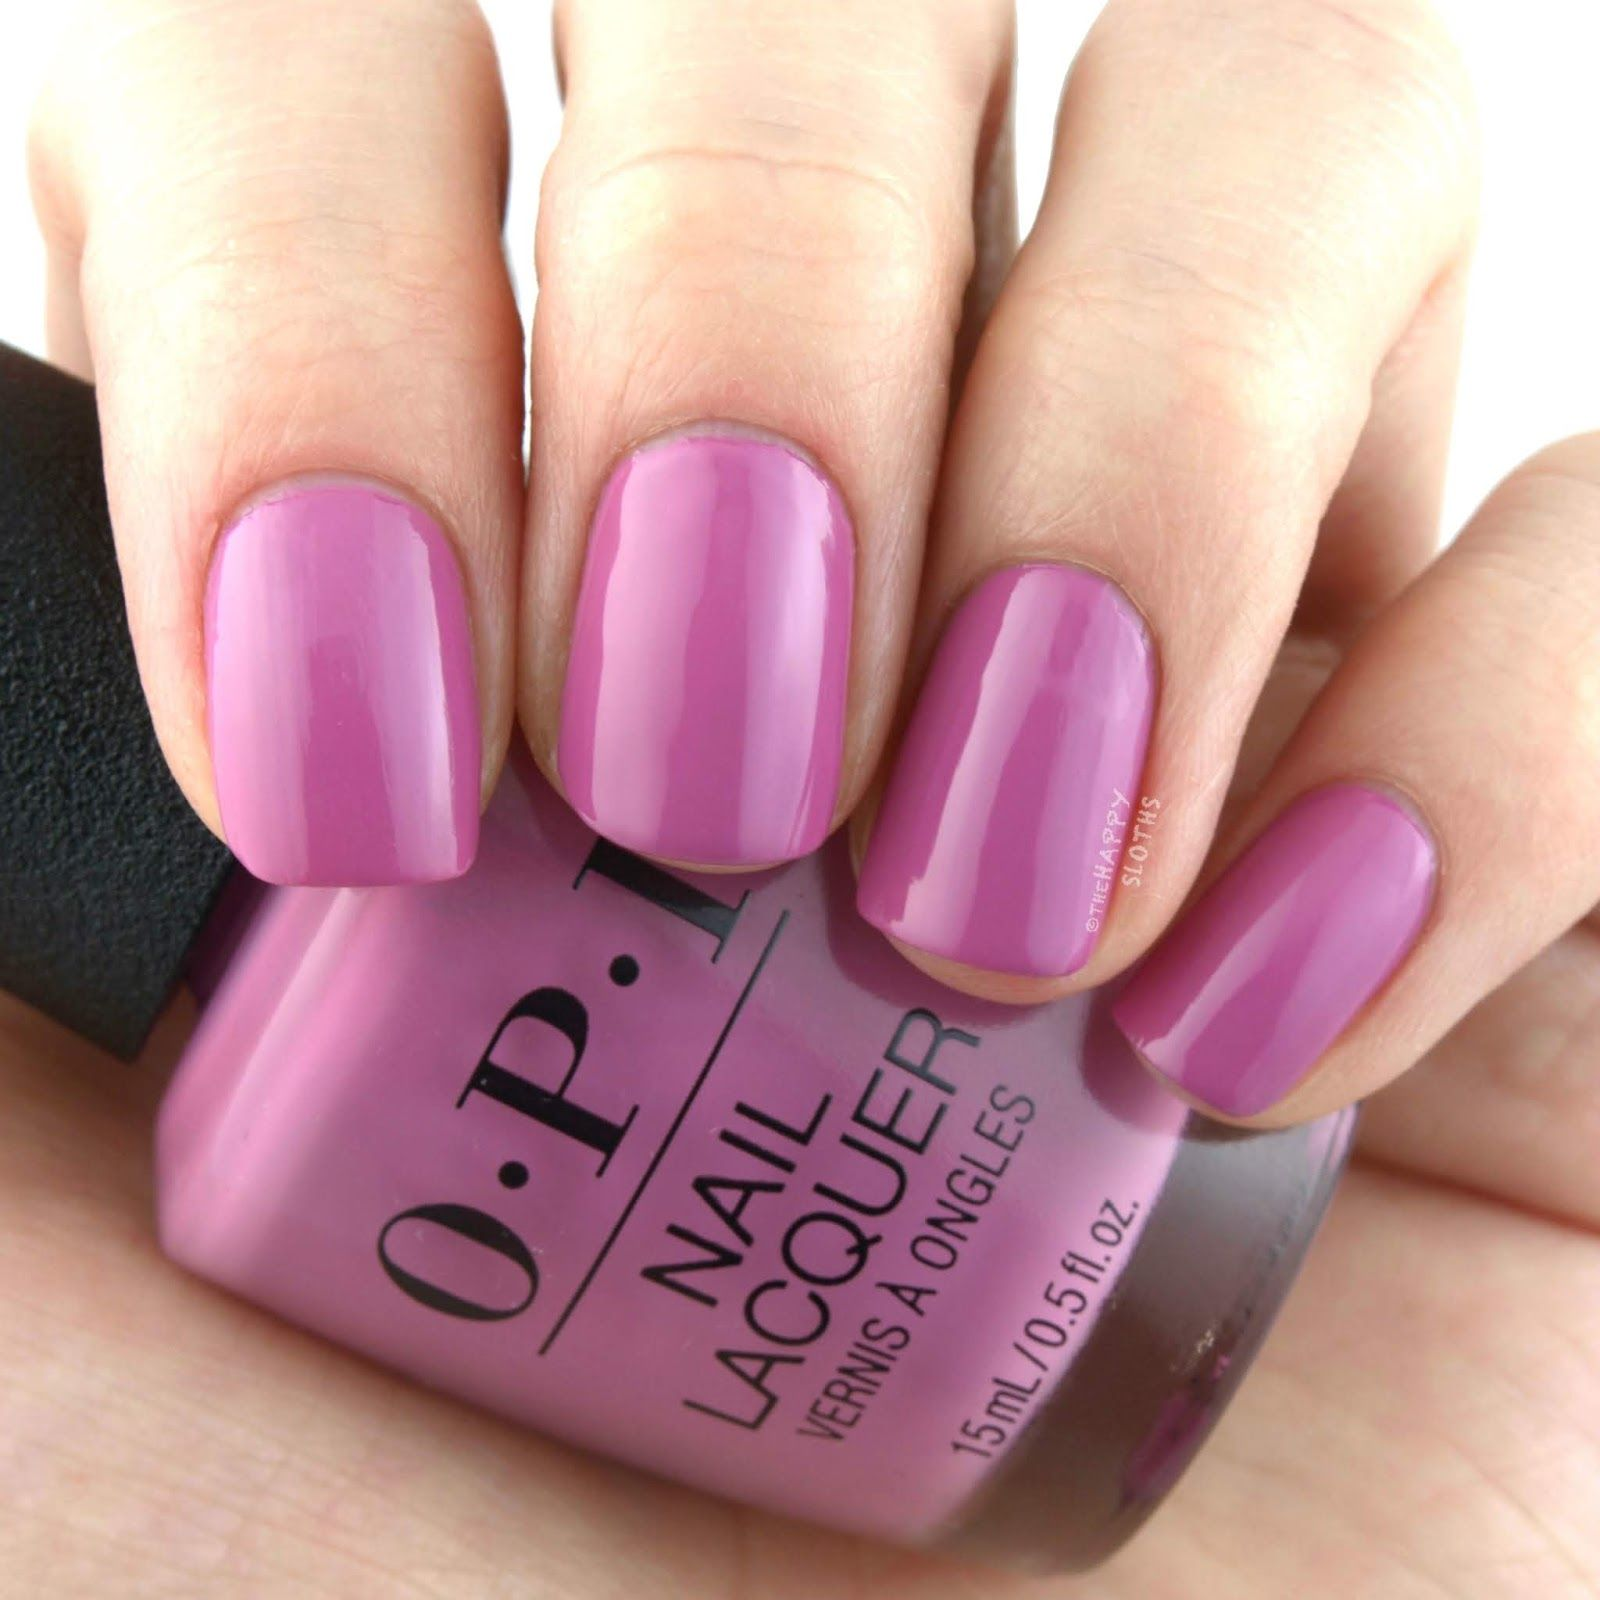 Opi Spring 2019 Tokyo Collection Arigato From Tokyo Review And